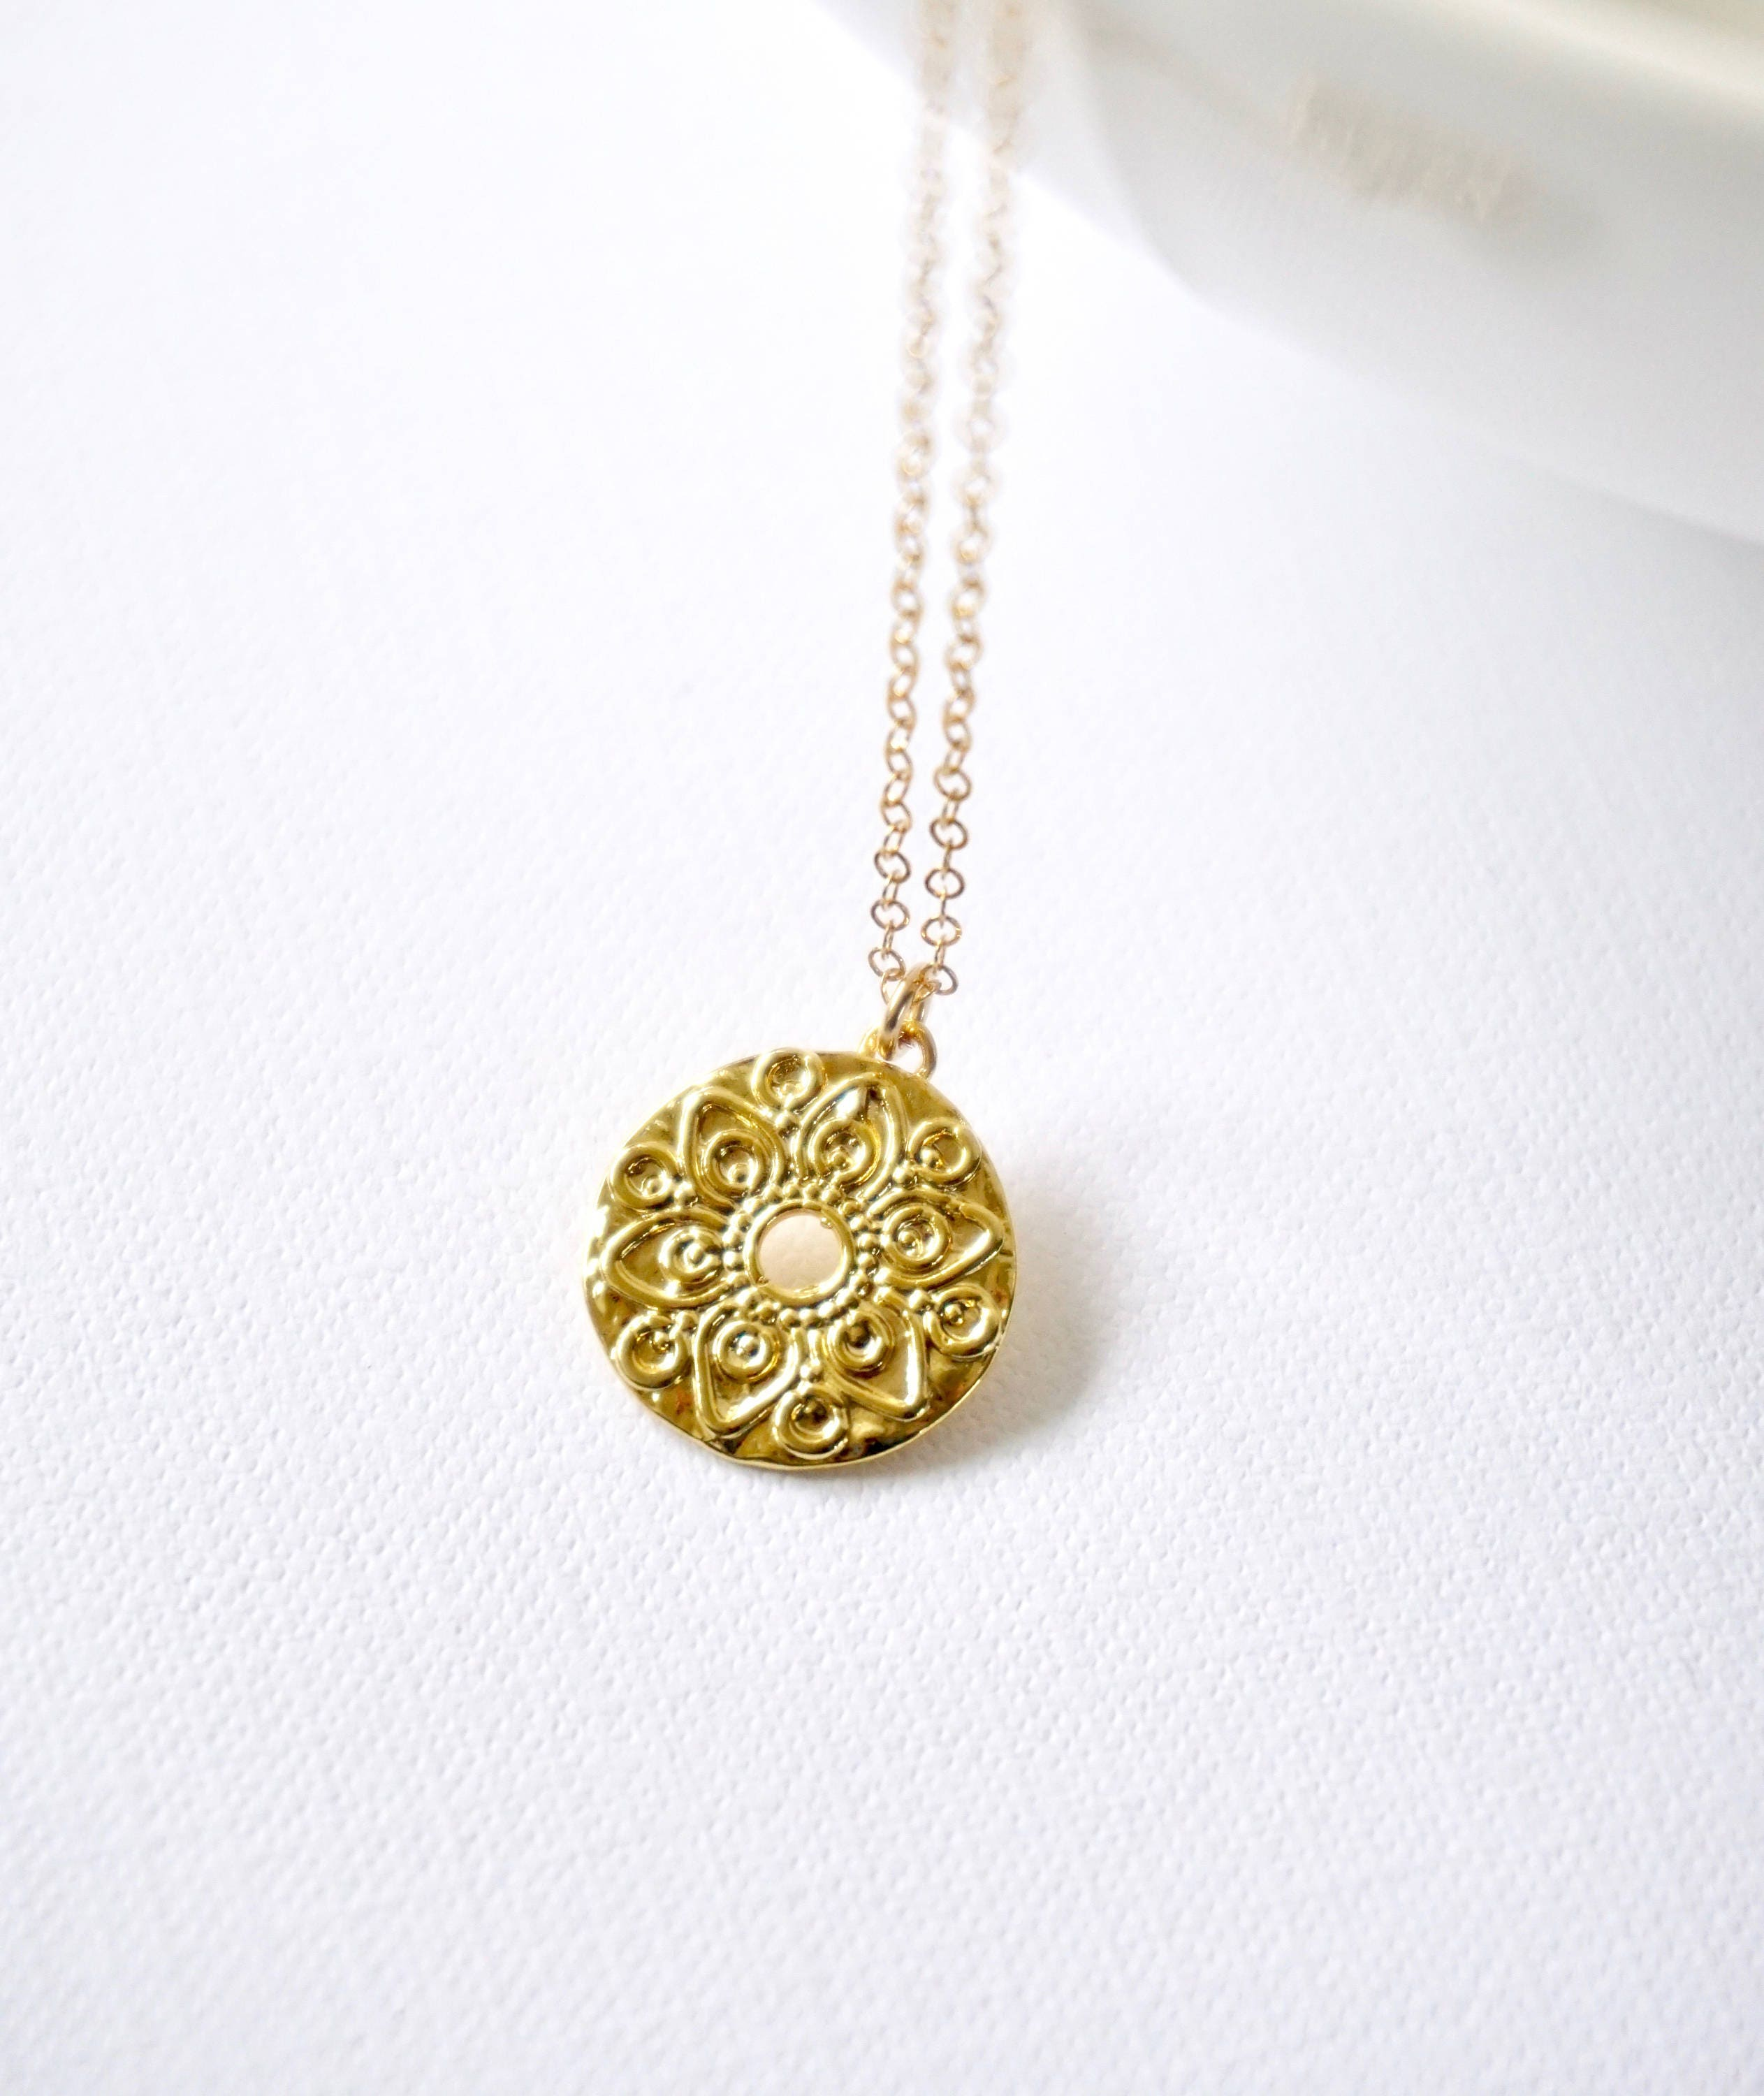 constantinople medallion rebecca bree necklaces plated card amulet shop delicate sale pamela necklace gold